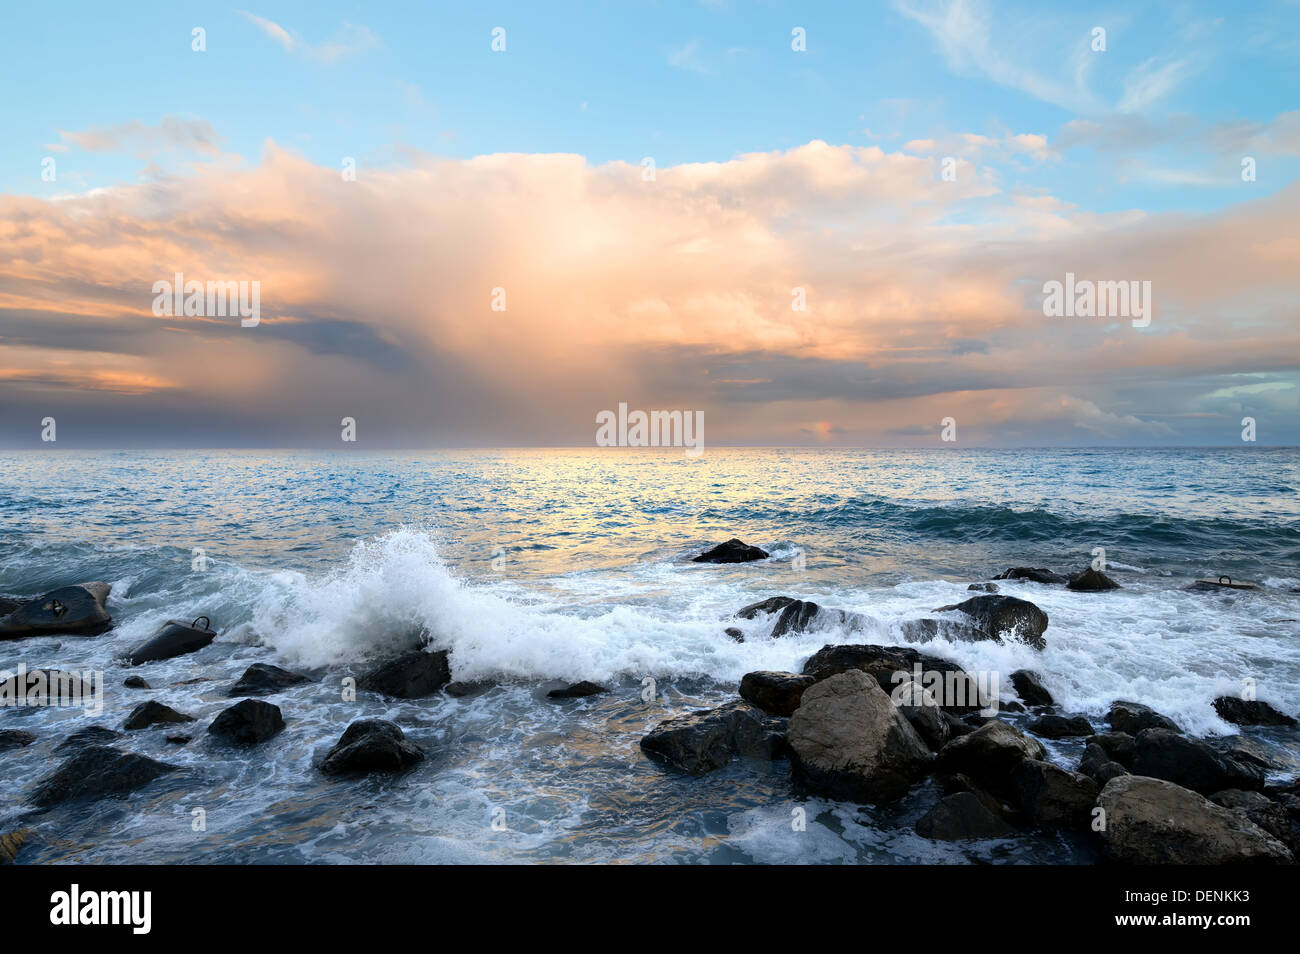 Rocky coast and sea waves at sunset - Stock Image